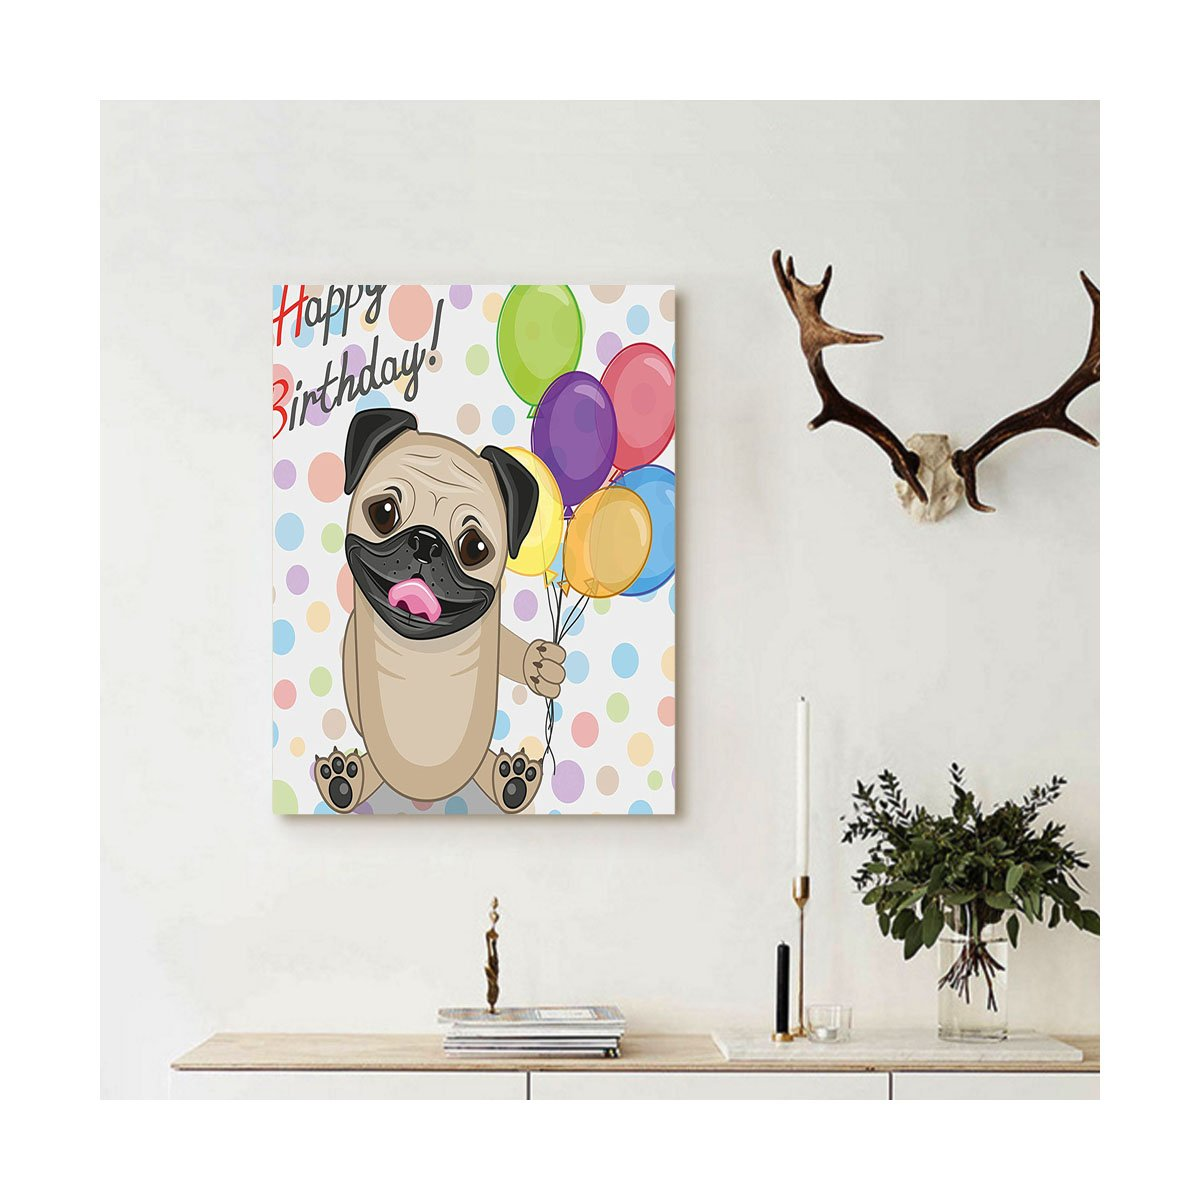 Liguo88 Custom canvas Birthday Decorations for Kids Animal Cute Dog Smiling Pug with Party Balloons Greeting Card Wall Hanging for Multicolor by Liguo88 (Image #1)